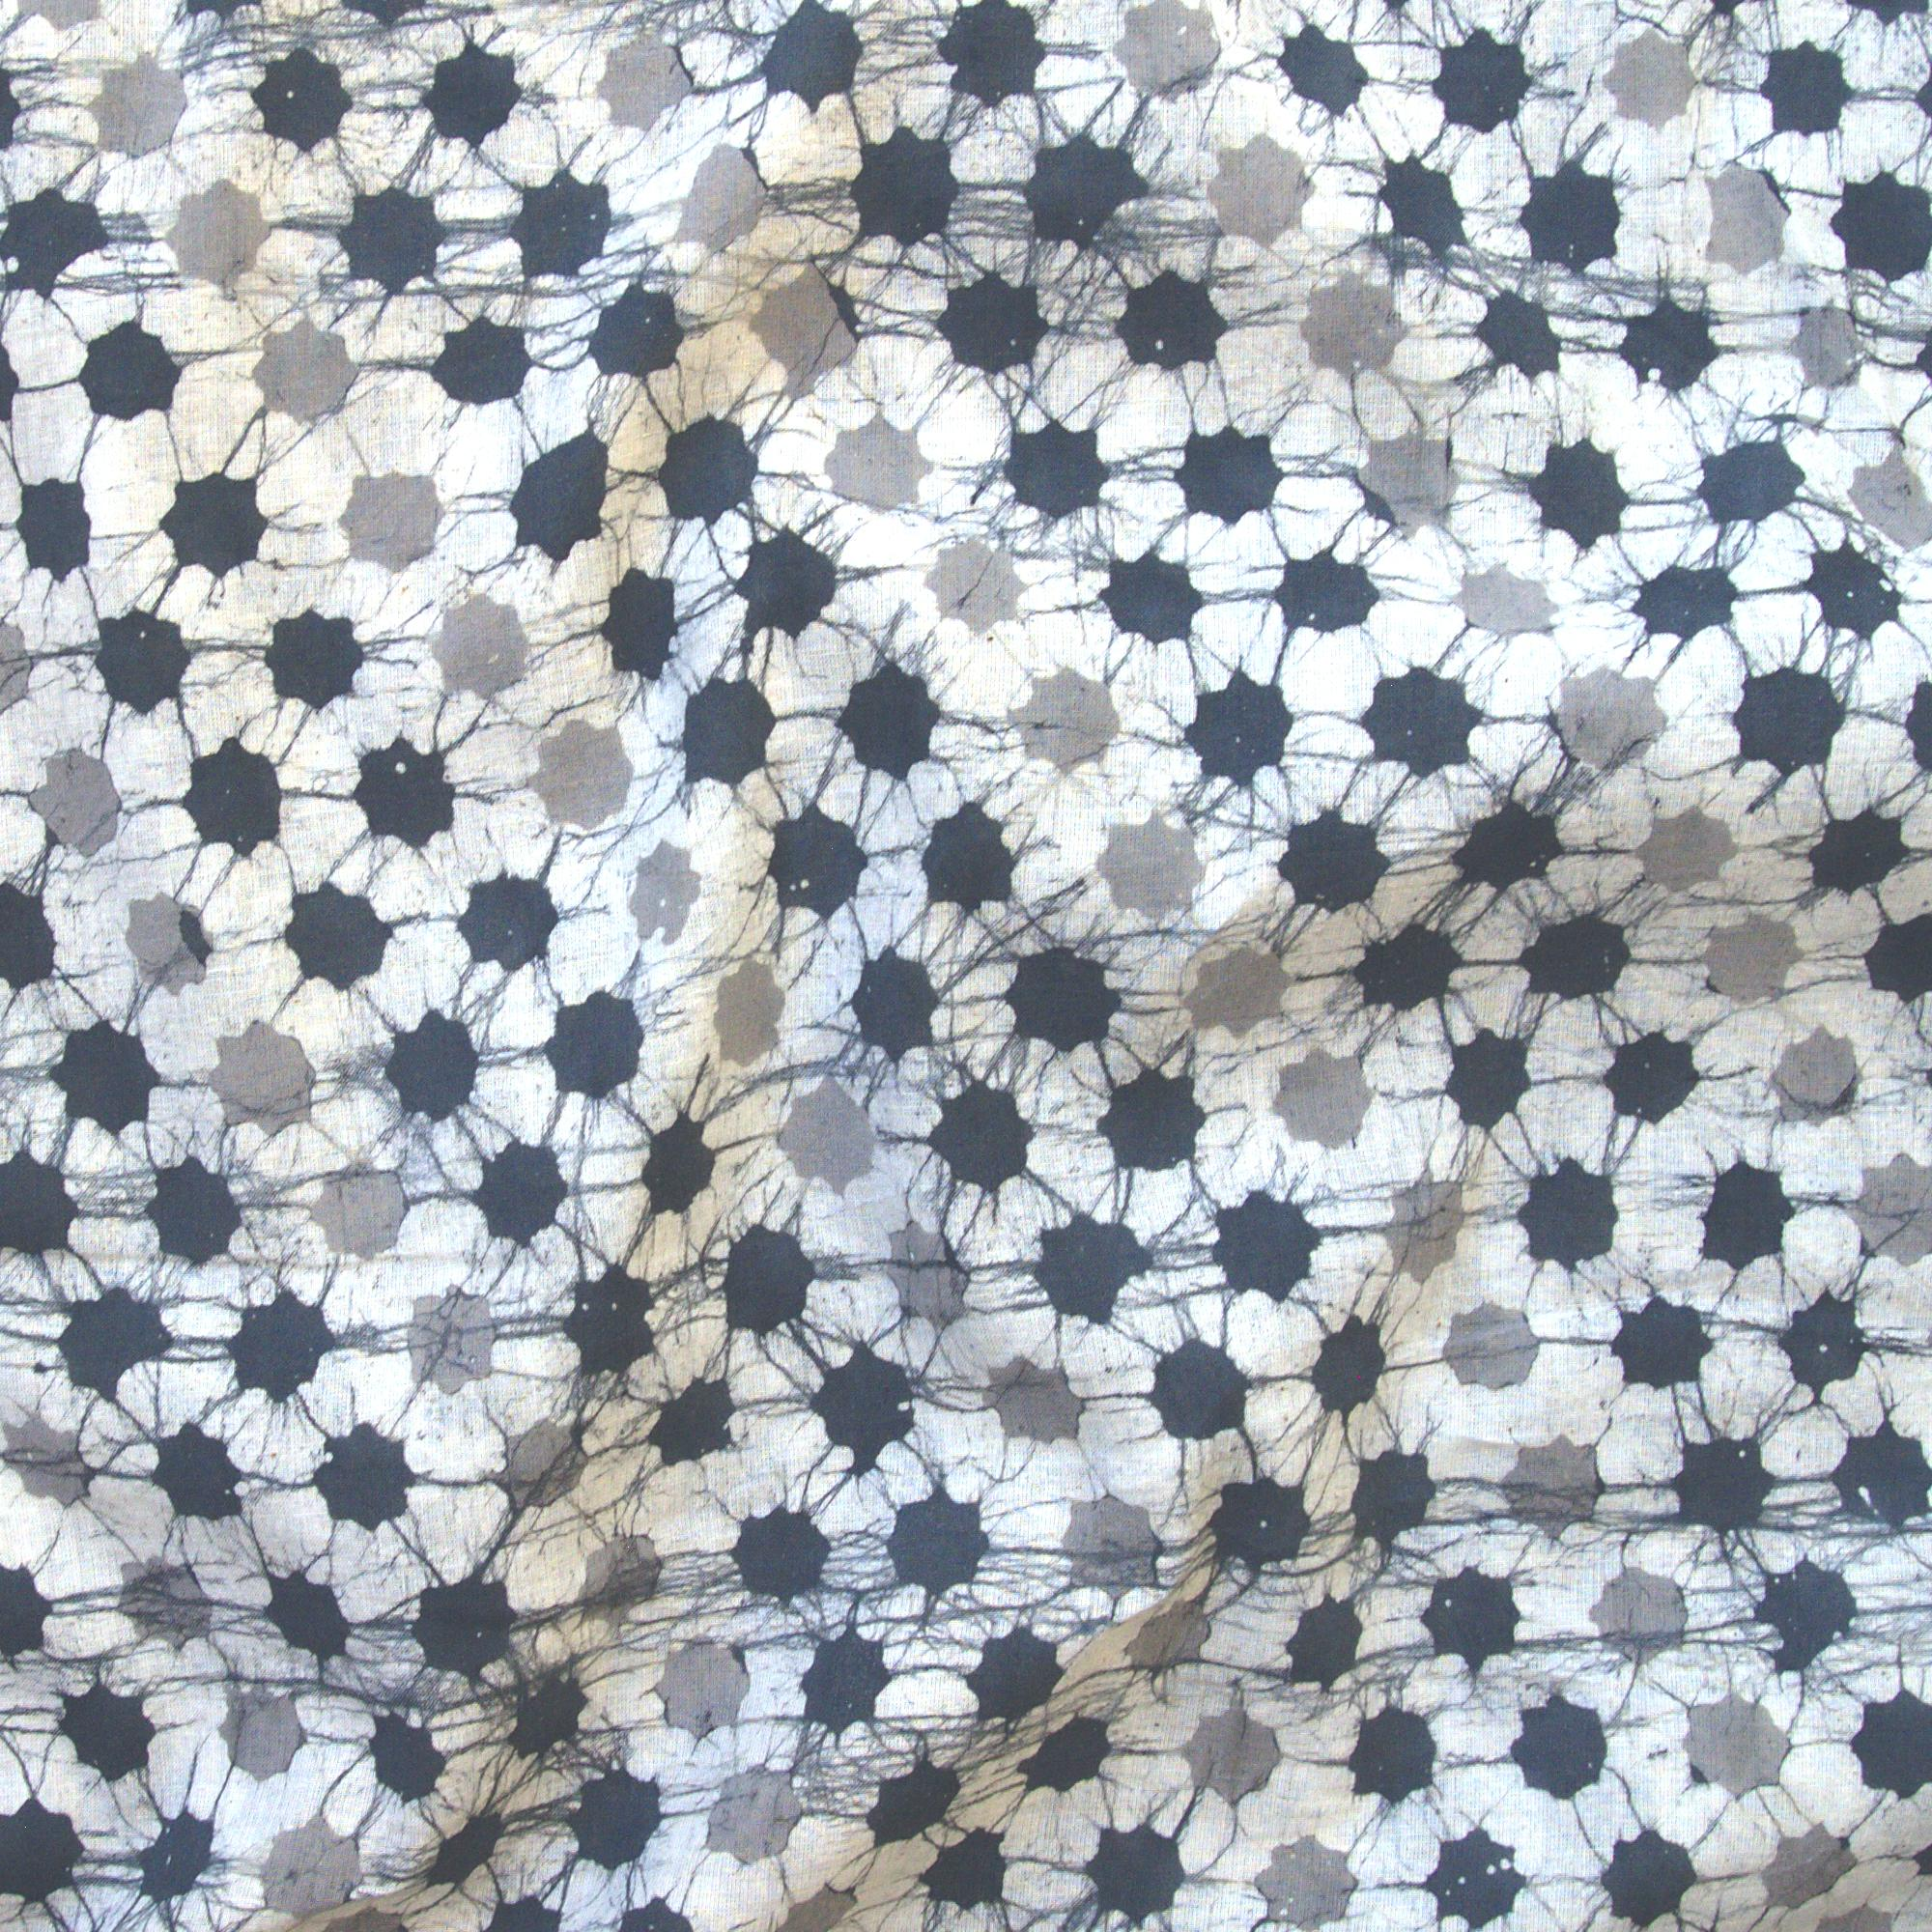 1 - SHA05 - 100% Block-Printed Batik Cotton Fabric From India - Batik - Grey Stars - Contrast